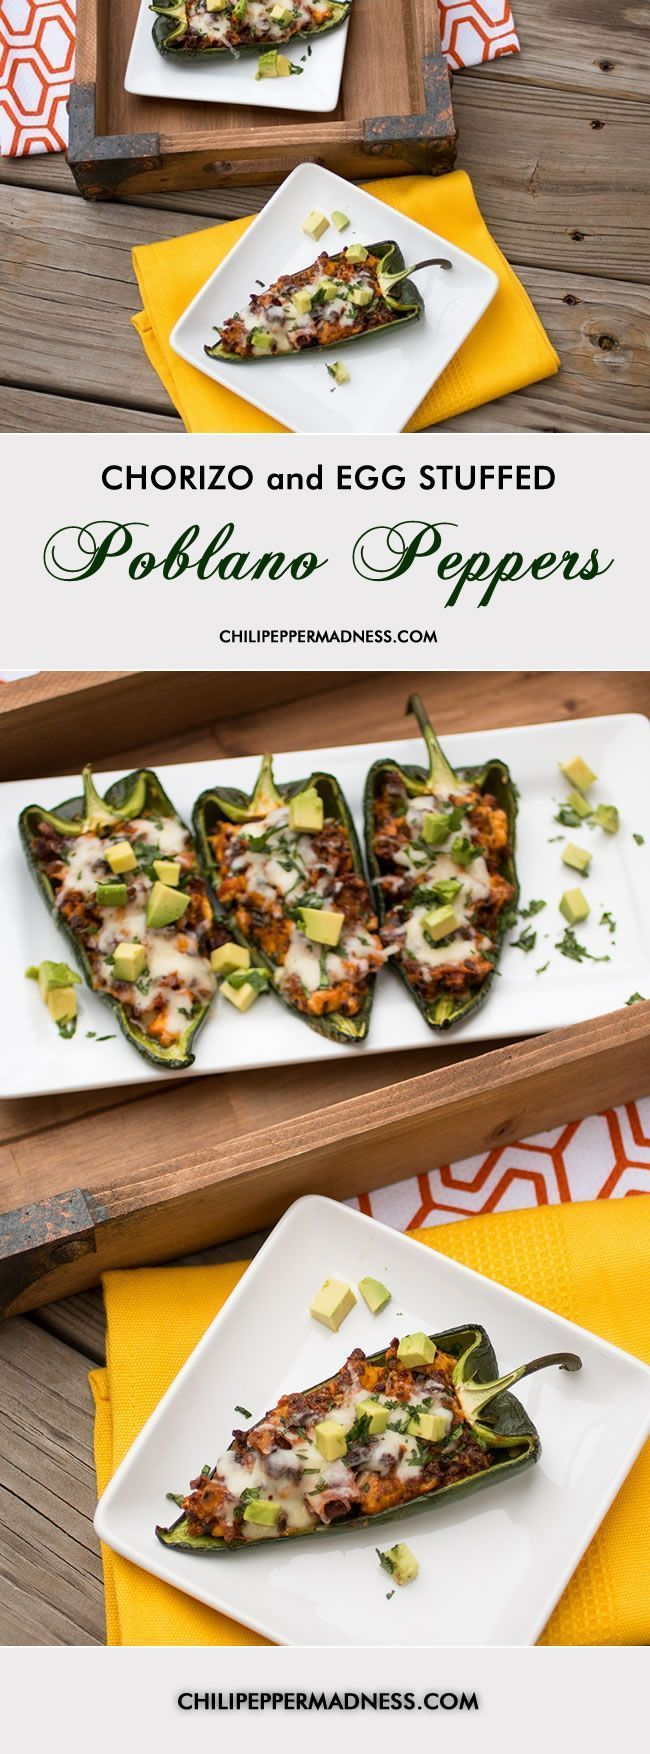 Chorizo and Egg Stuffed Poblano Peppers - Perfect stuffed chili peppers for breakfast or lunch | ChiliPepperMadness.com